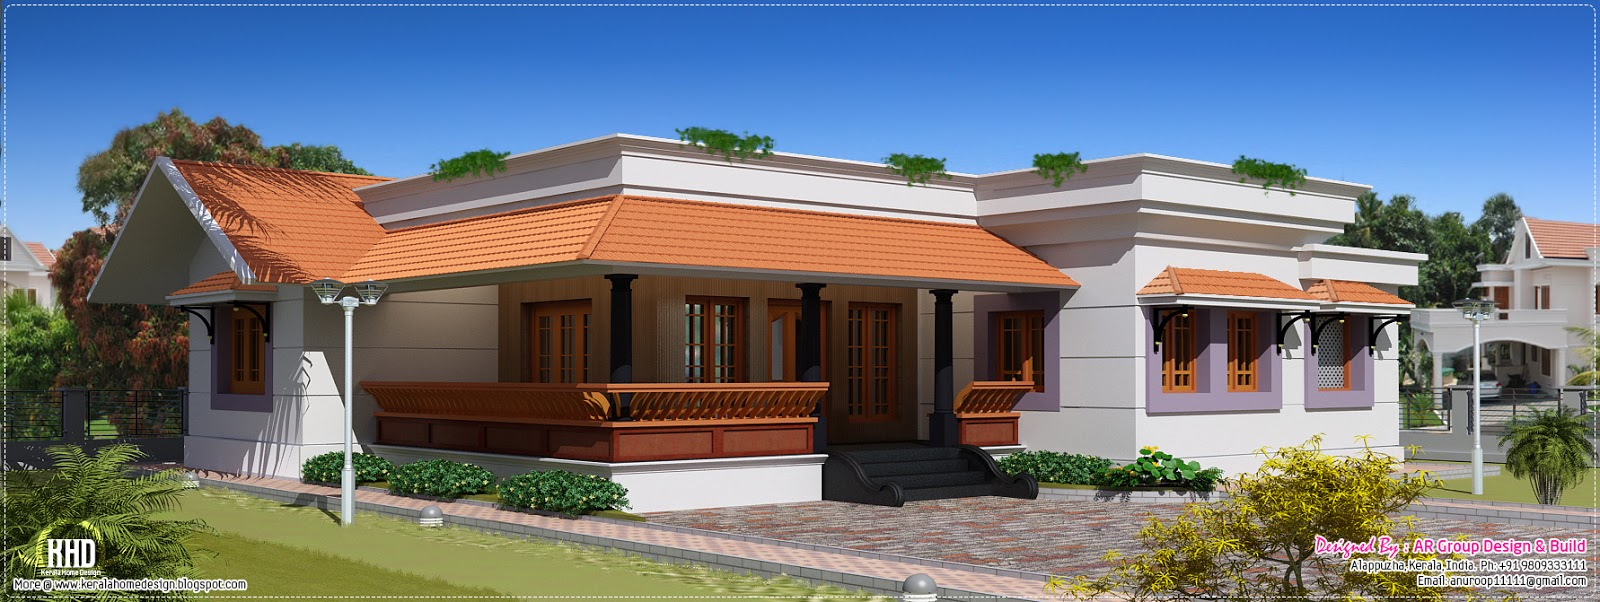 1600 Sq Feet Single Floor House Kerala Home Design And